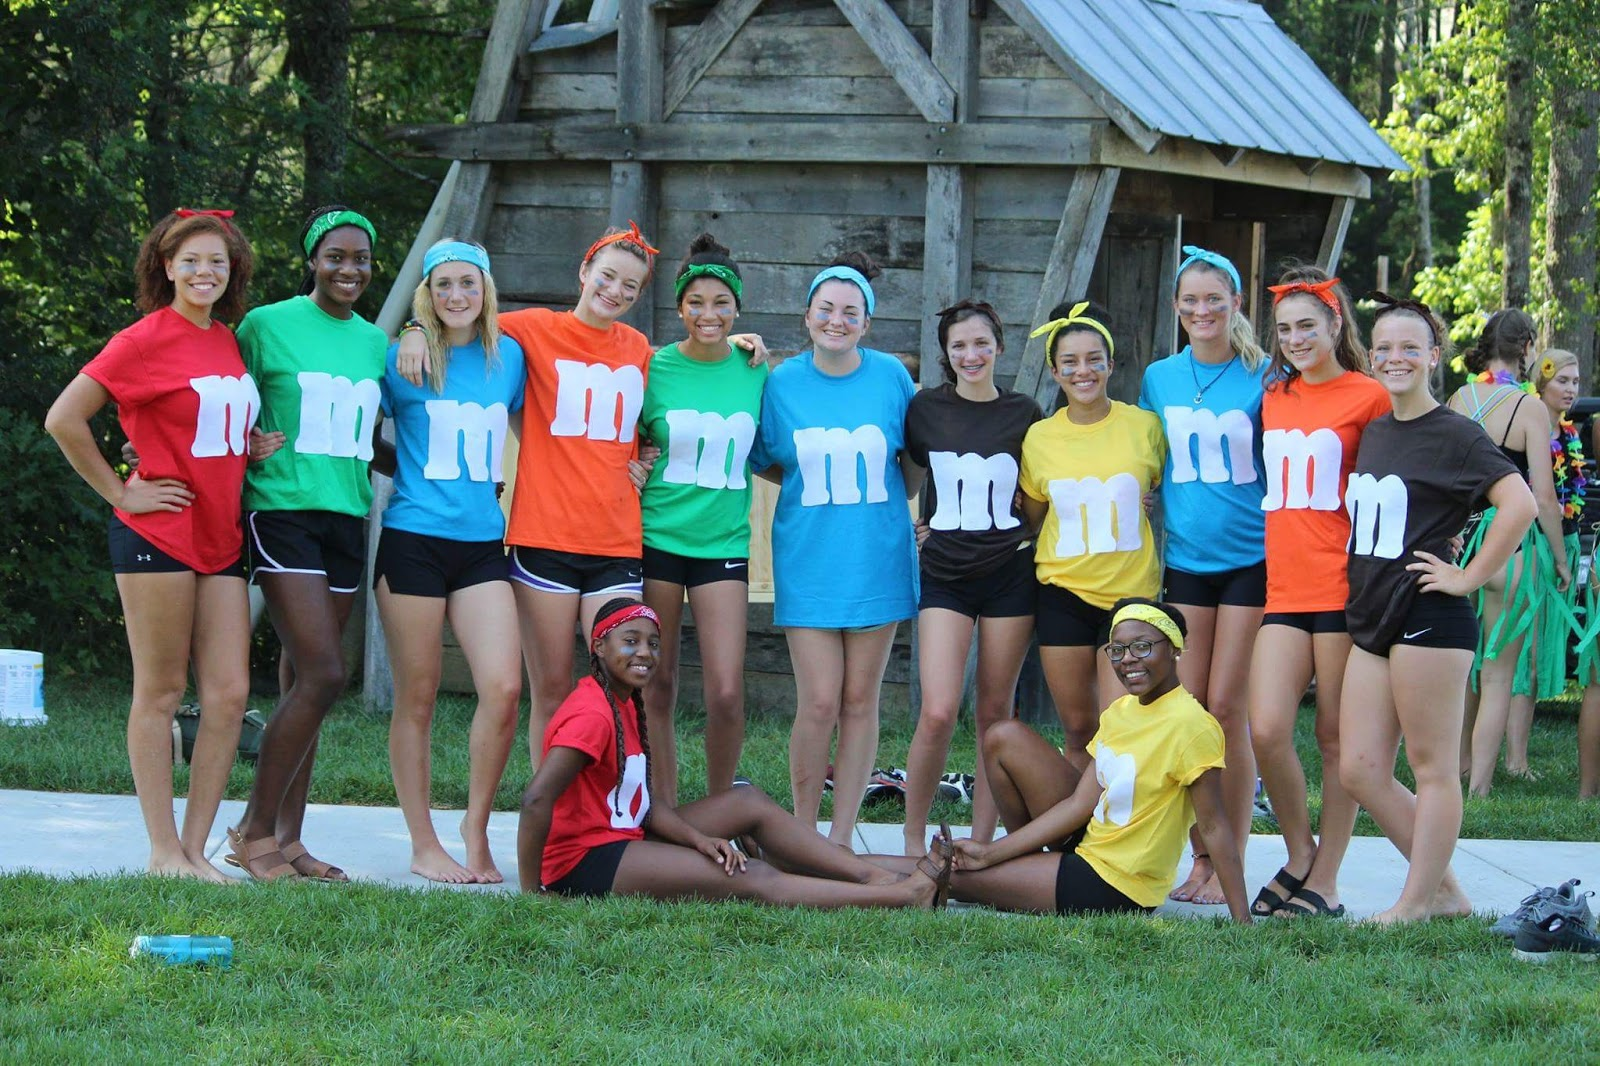 The Young Life Leader Blog: Young Life Camp Unity Game Outfits